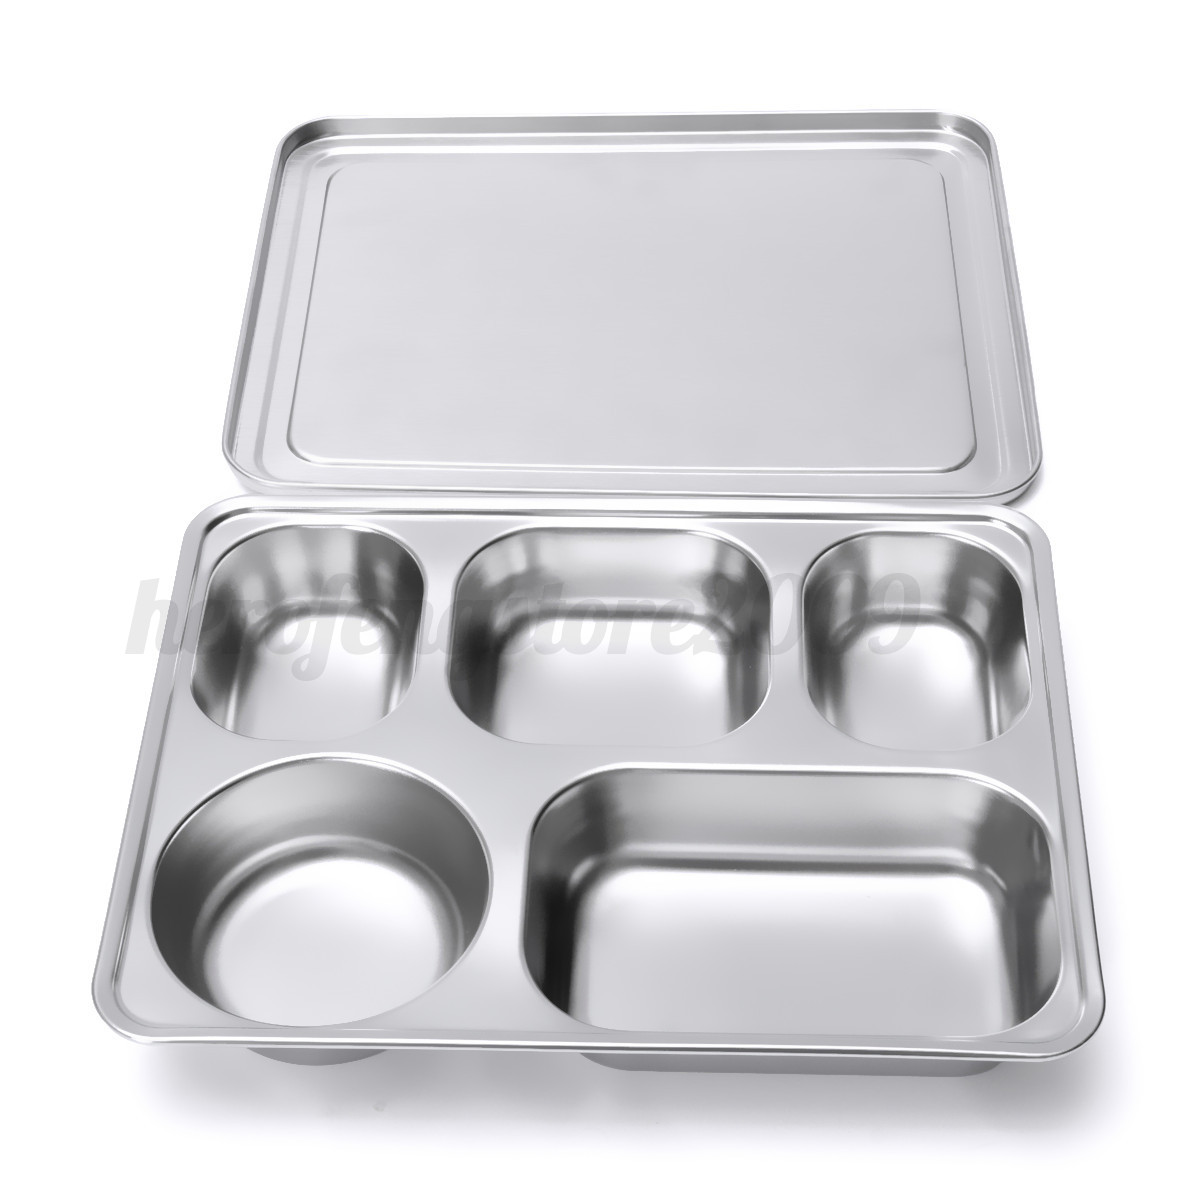 eco stainless steel food divided serving plate tray lunch dinner dish cover ebay. Black Bedroom Furniture Sets. Home Design Ideas